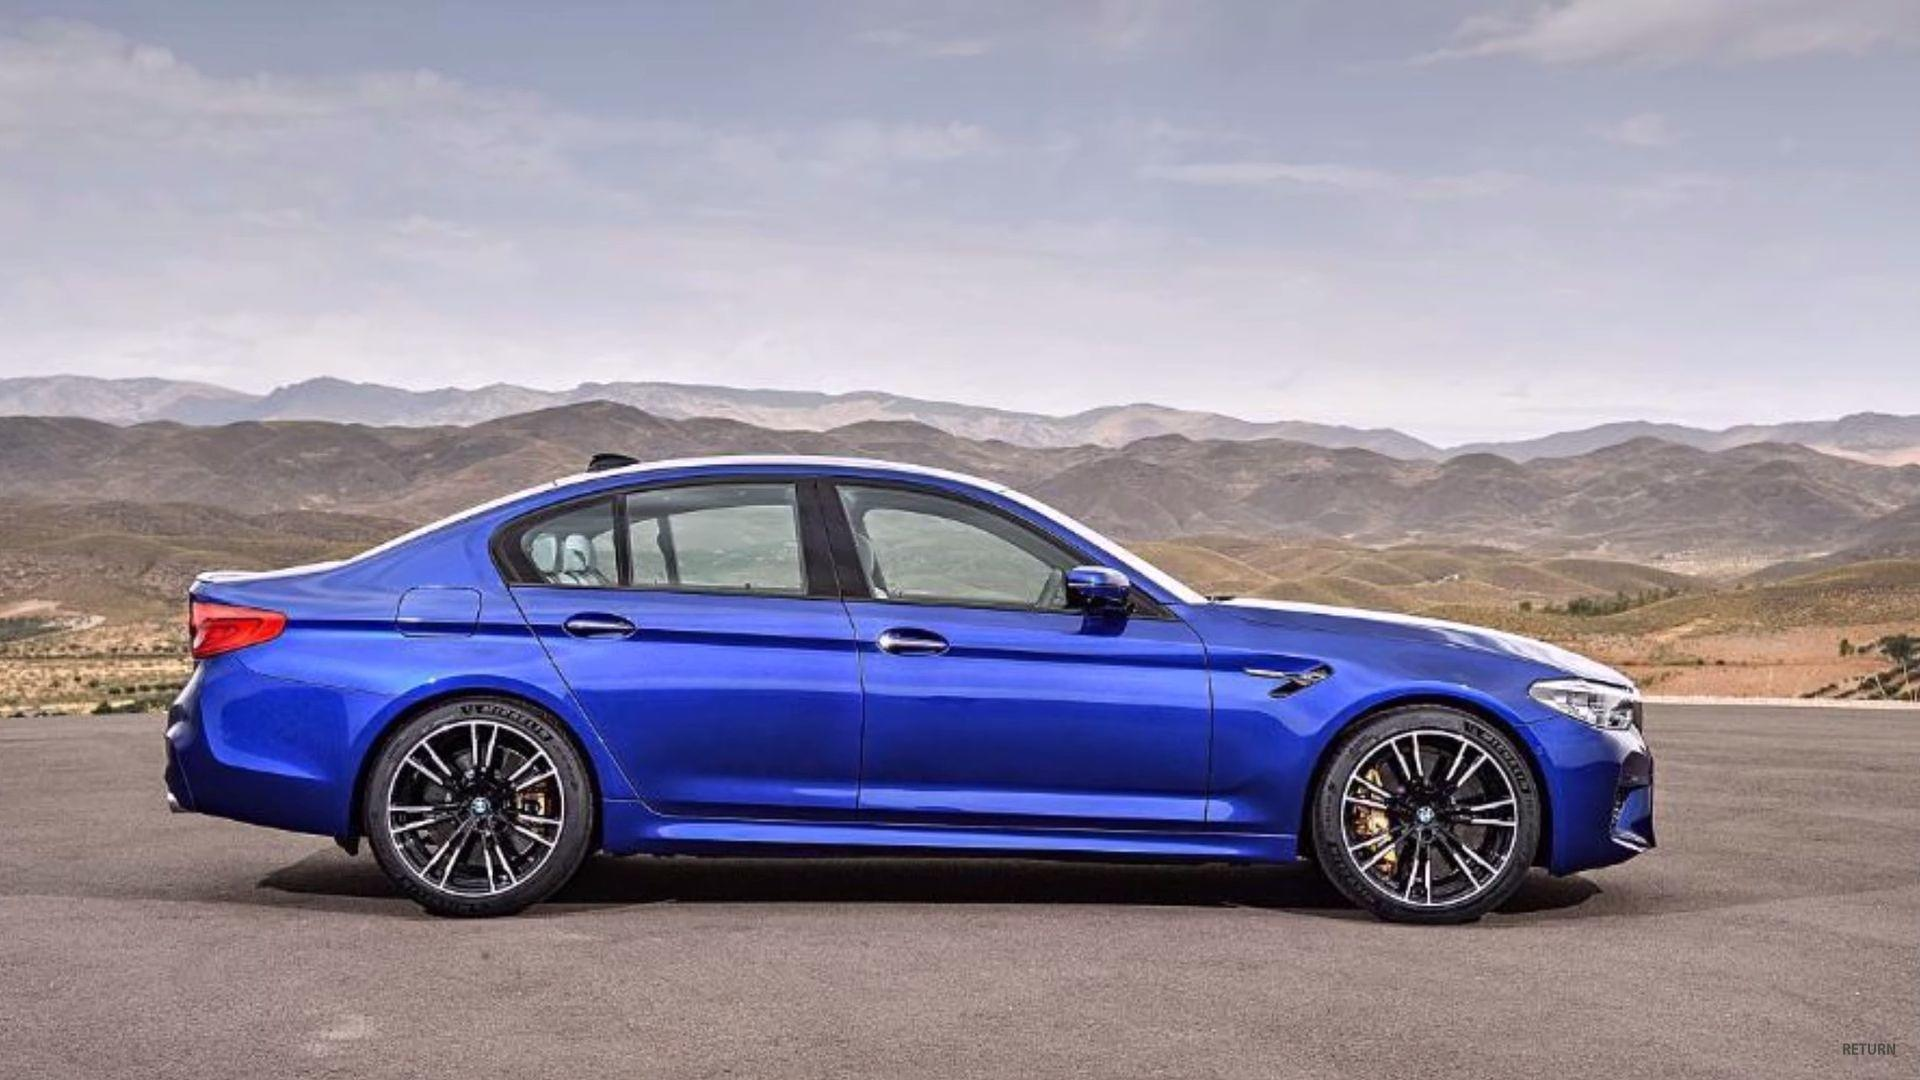 F90 BMW M5 fully leaked ahead of scheduled debut Image 701096